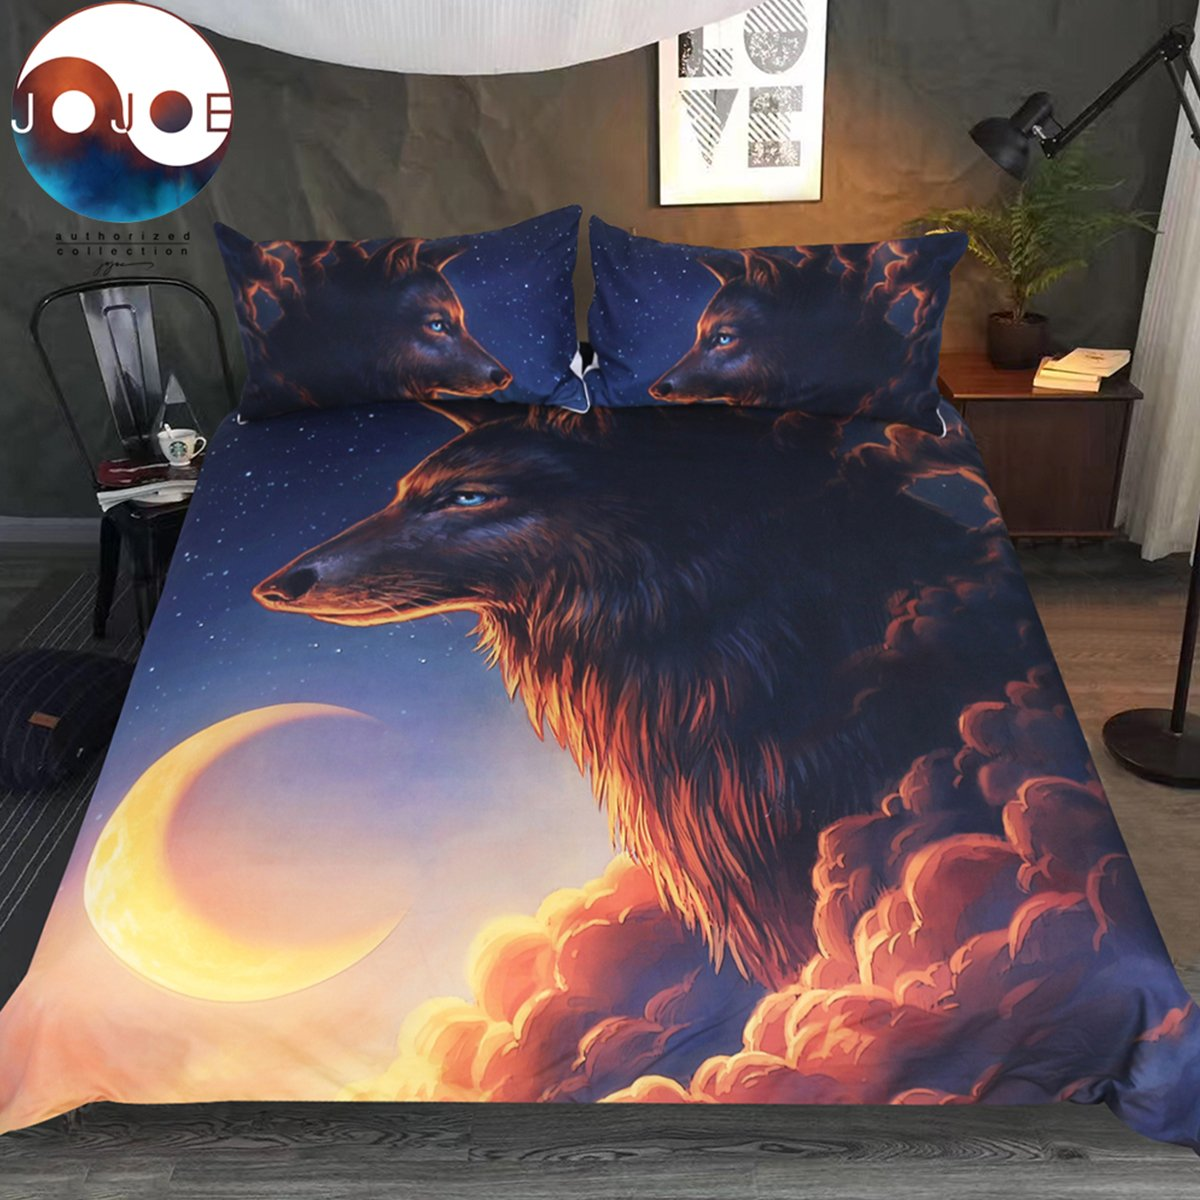 Sleepwish Night Guardian by Jojoesart Bedding Set 3 Piece Lunar Wolf Duvet Cover 3D Wolf Mountain Crescent Moon Fantasy Animal Bed Cover for Kids Adults (Twin)